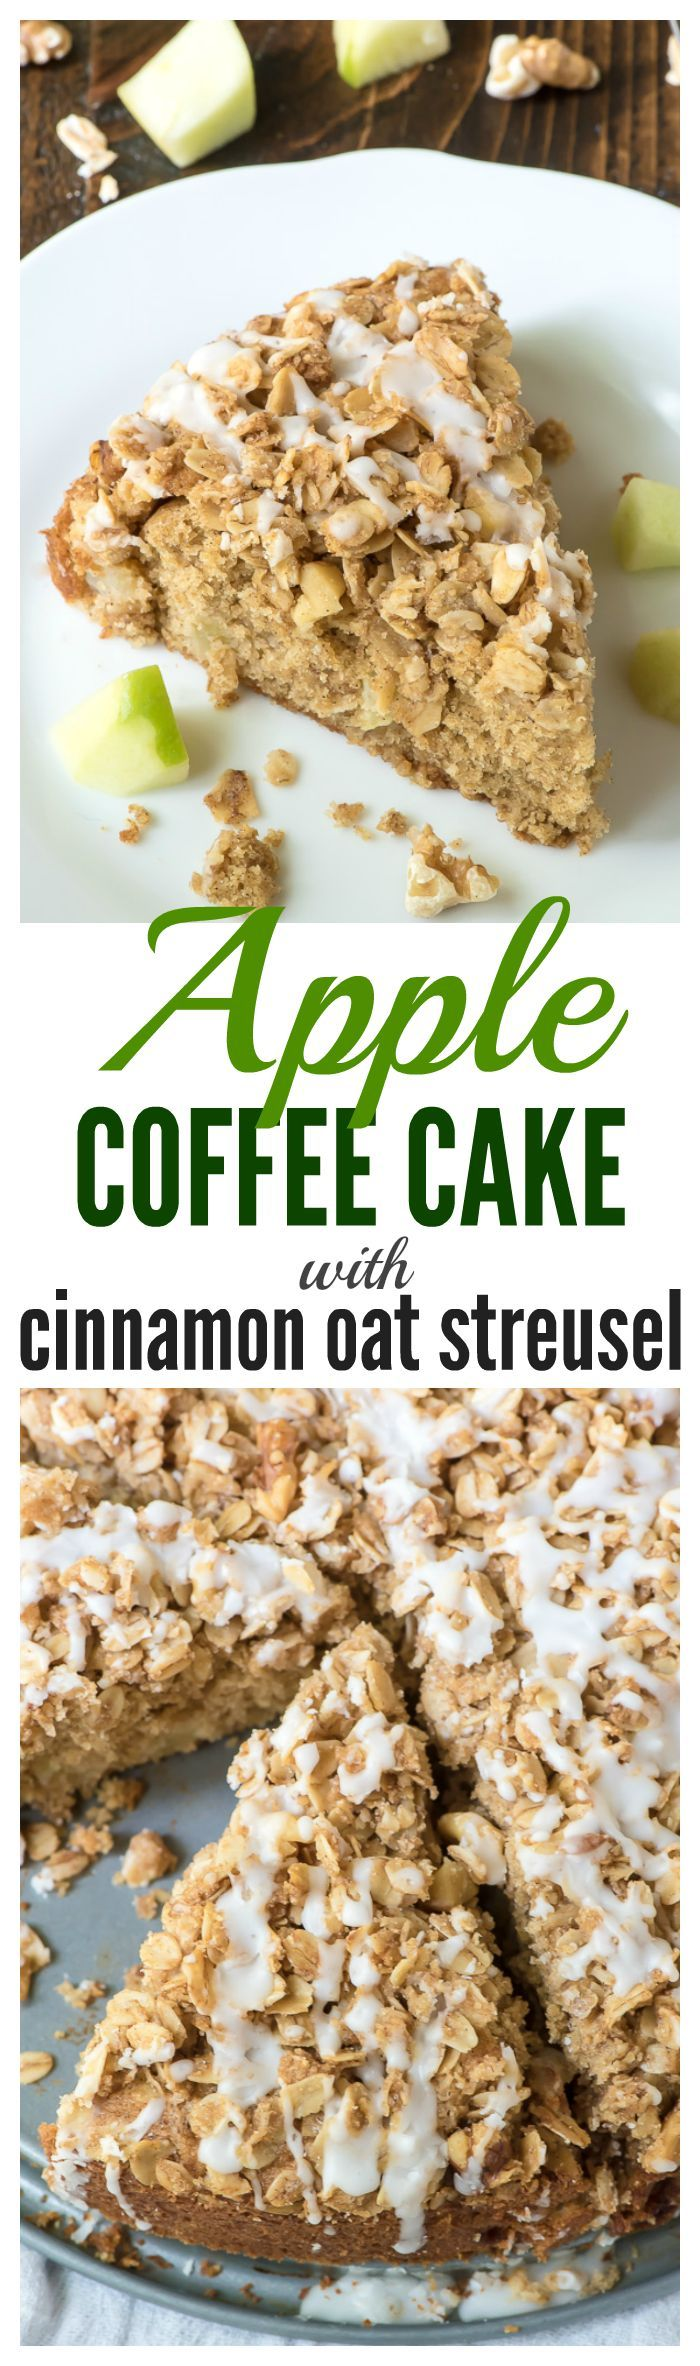 Best Ever Apple Coffee Cake with Cinnamon Oat Streusel Topping. An ultra moist coffee cake with fall spices, fresh apples, and an ADDICTIVE crumb topping.